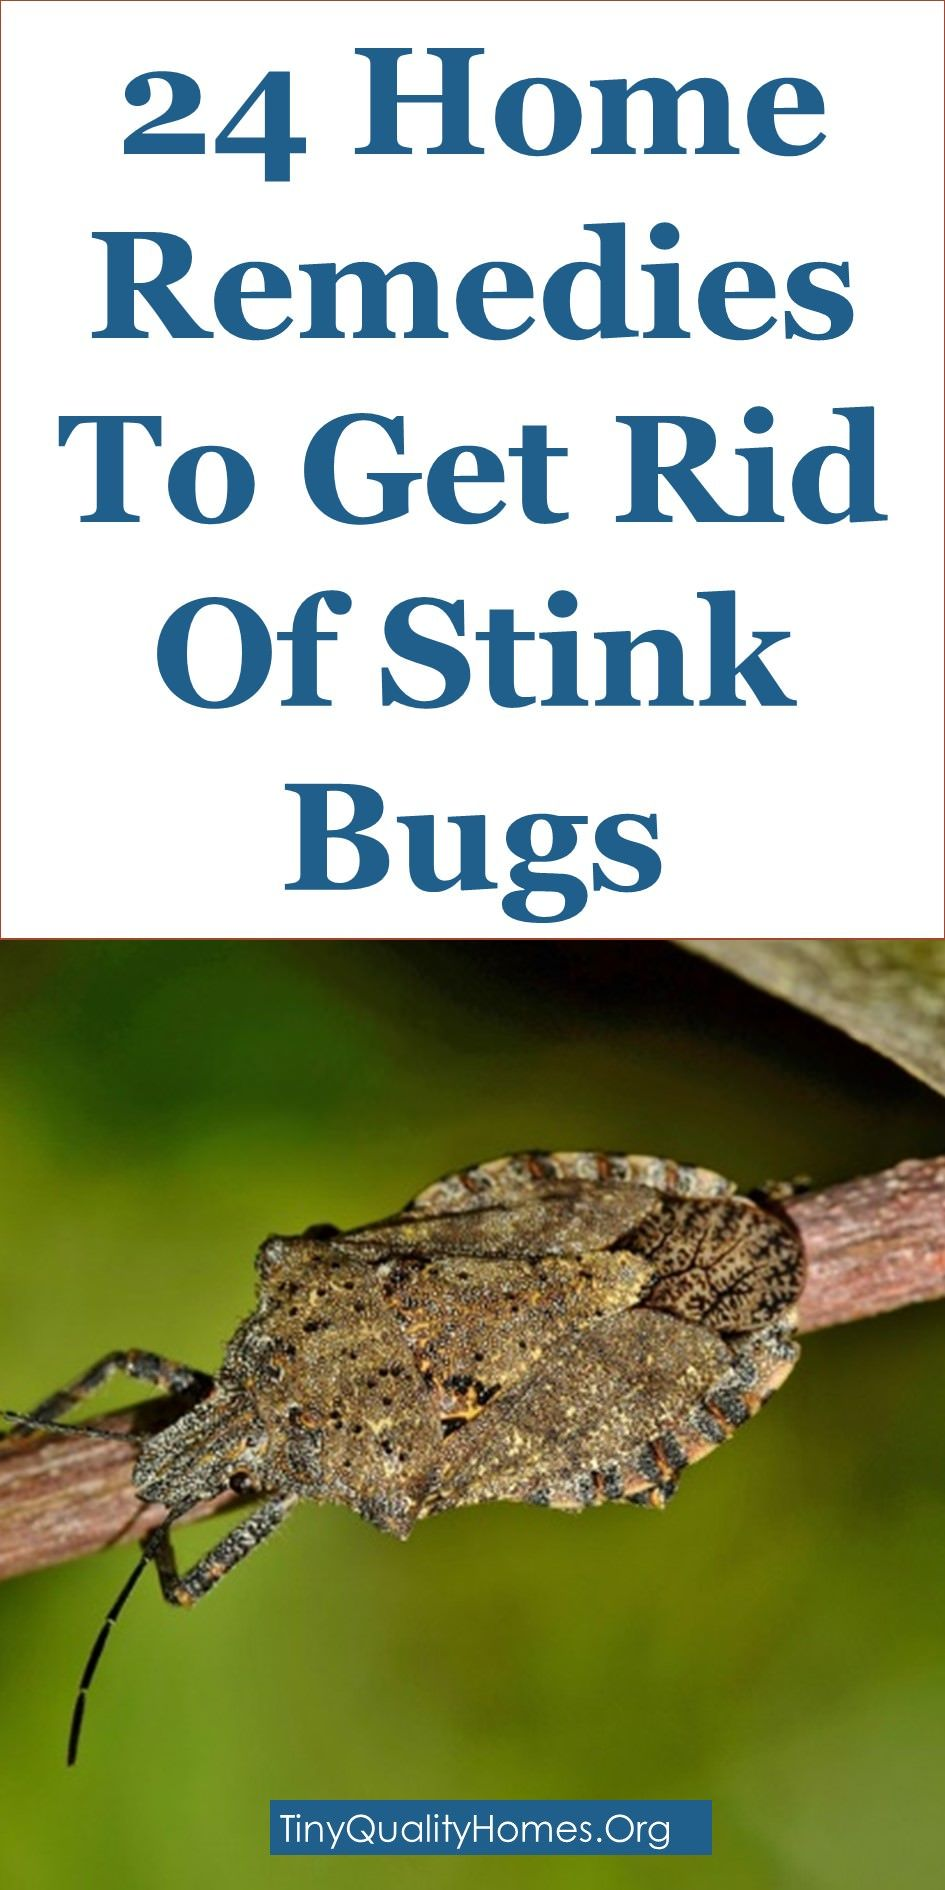 0e1e6ba76c224de0a23e72a1552be7ac - How To Get Rid Of Stink Bugs At Home